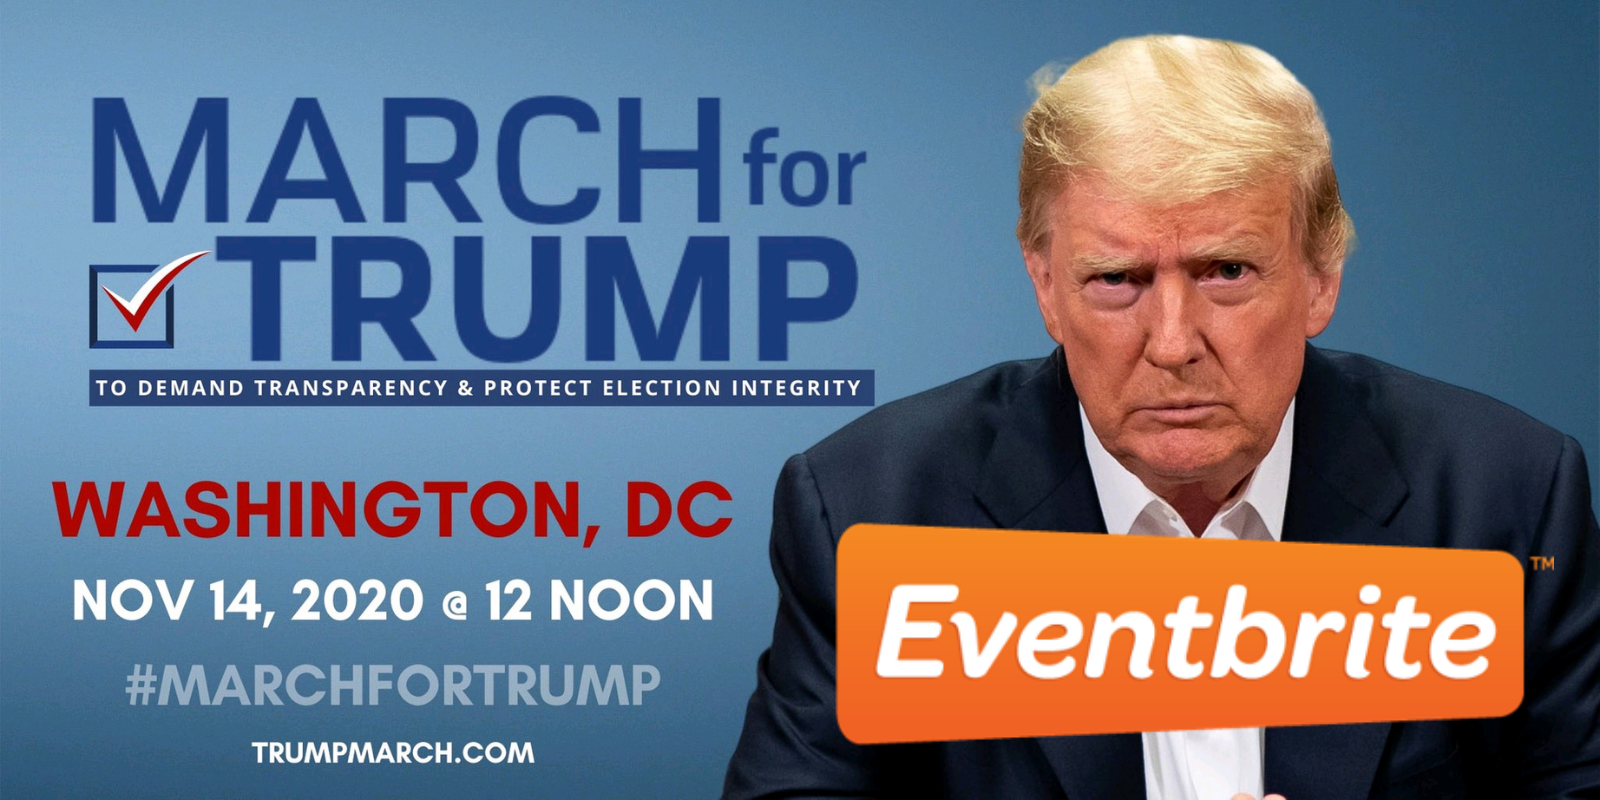 Eventbrite shuts down March for Trump page for 'potentially harmful misinformation'